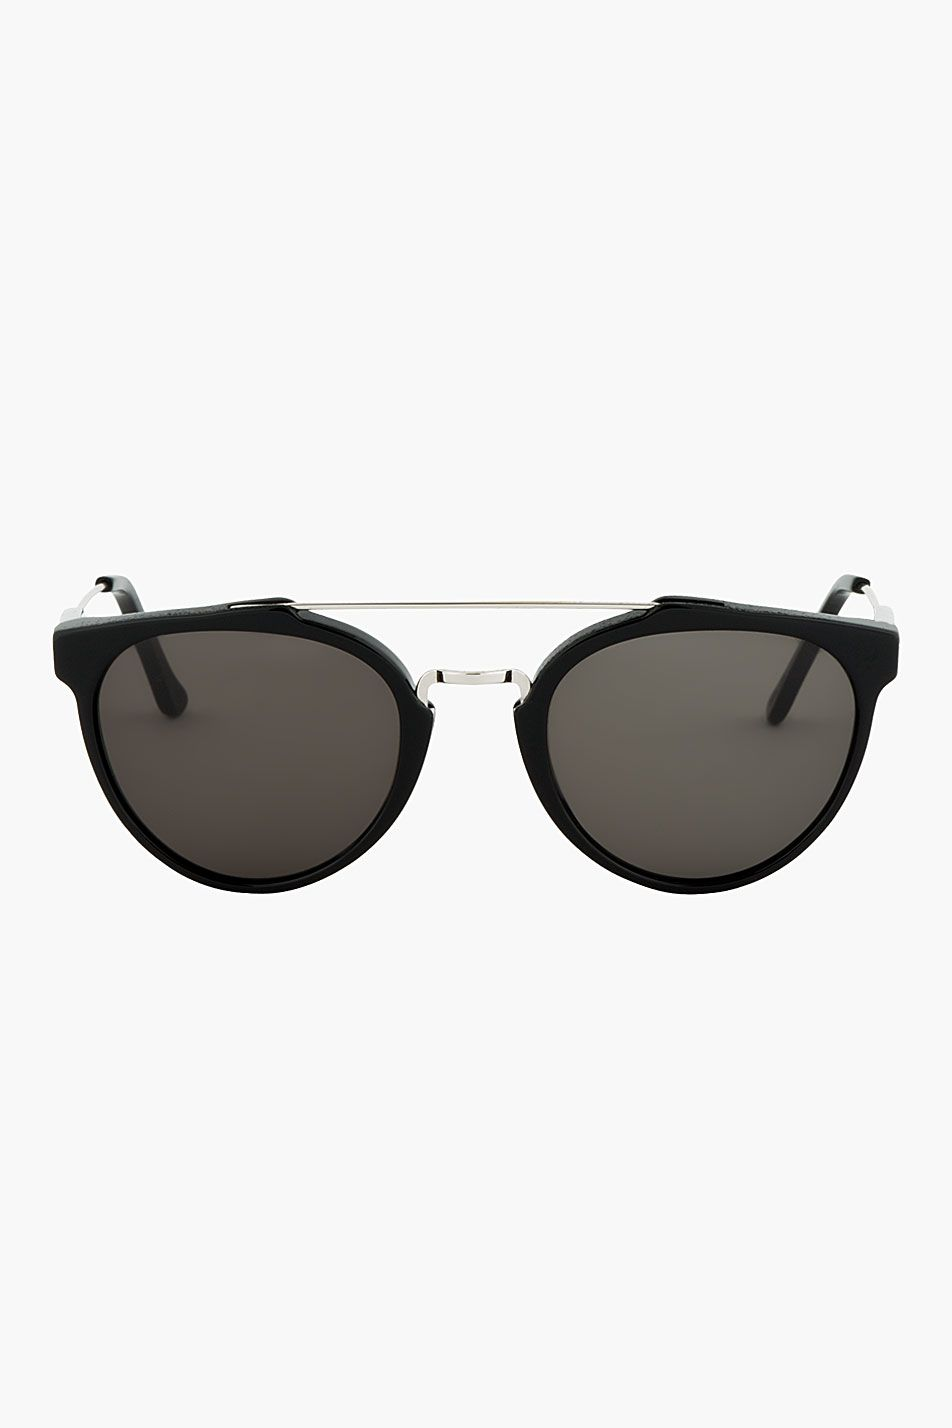 f8aae8e18e SUPER Black Giaguaro Sunglasses Trending Sunglasses